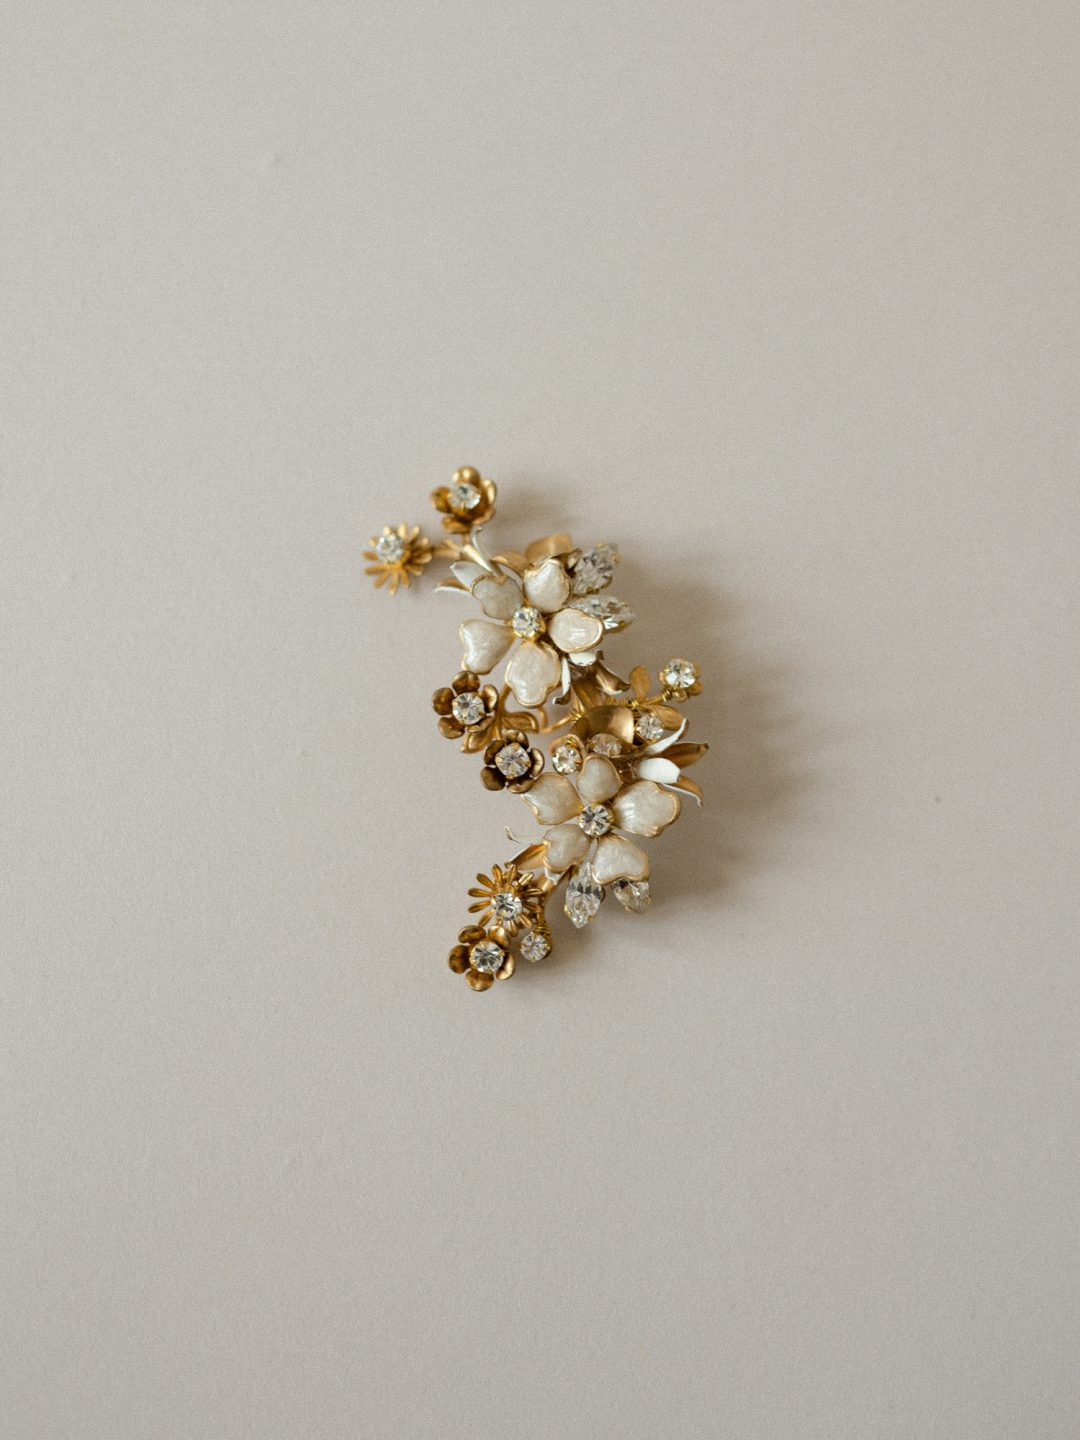 Style 809 - FLORAL BRIDAL EAR CUFF by SIBO Designs Couture www.sibodesigns.com